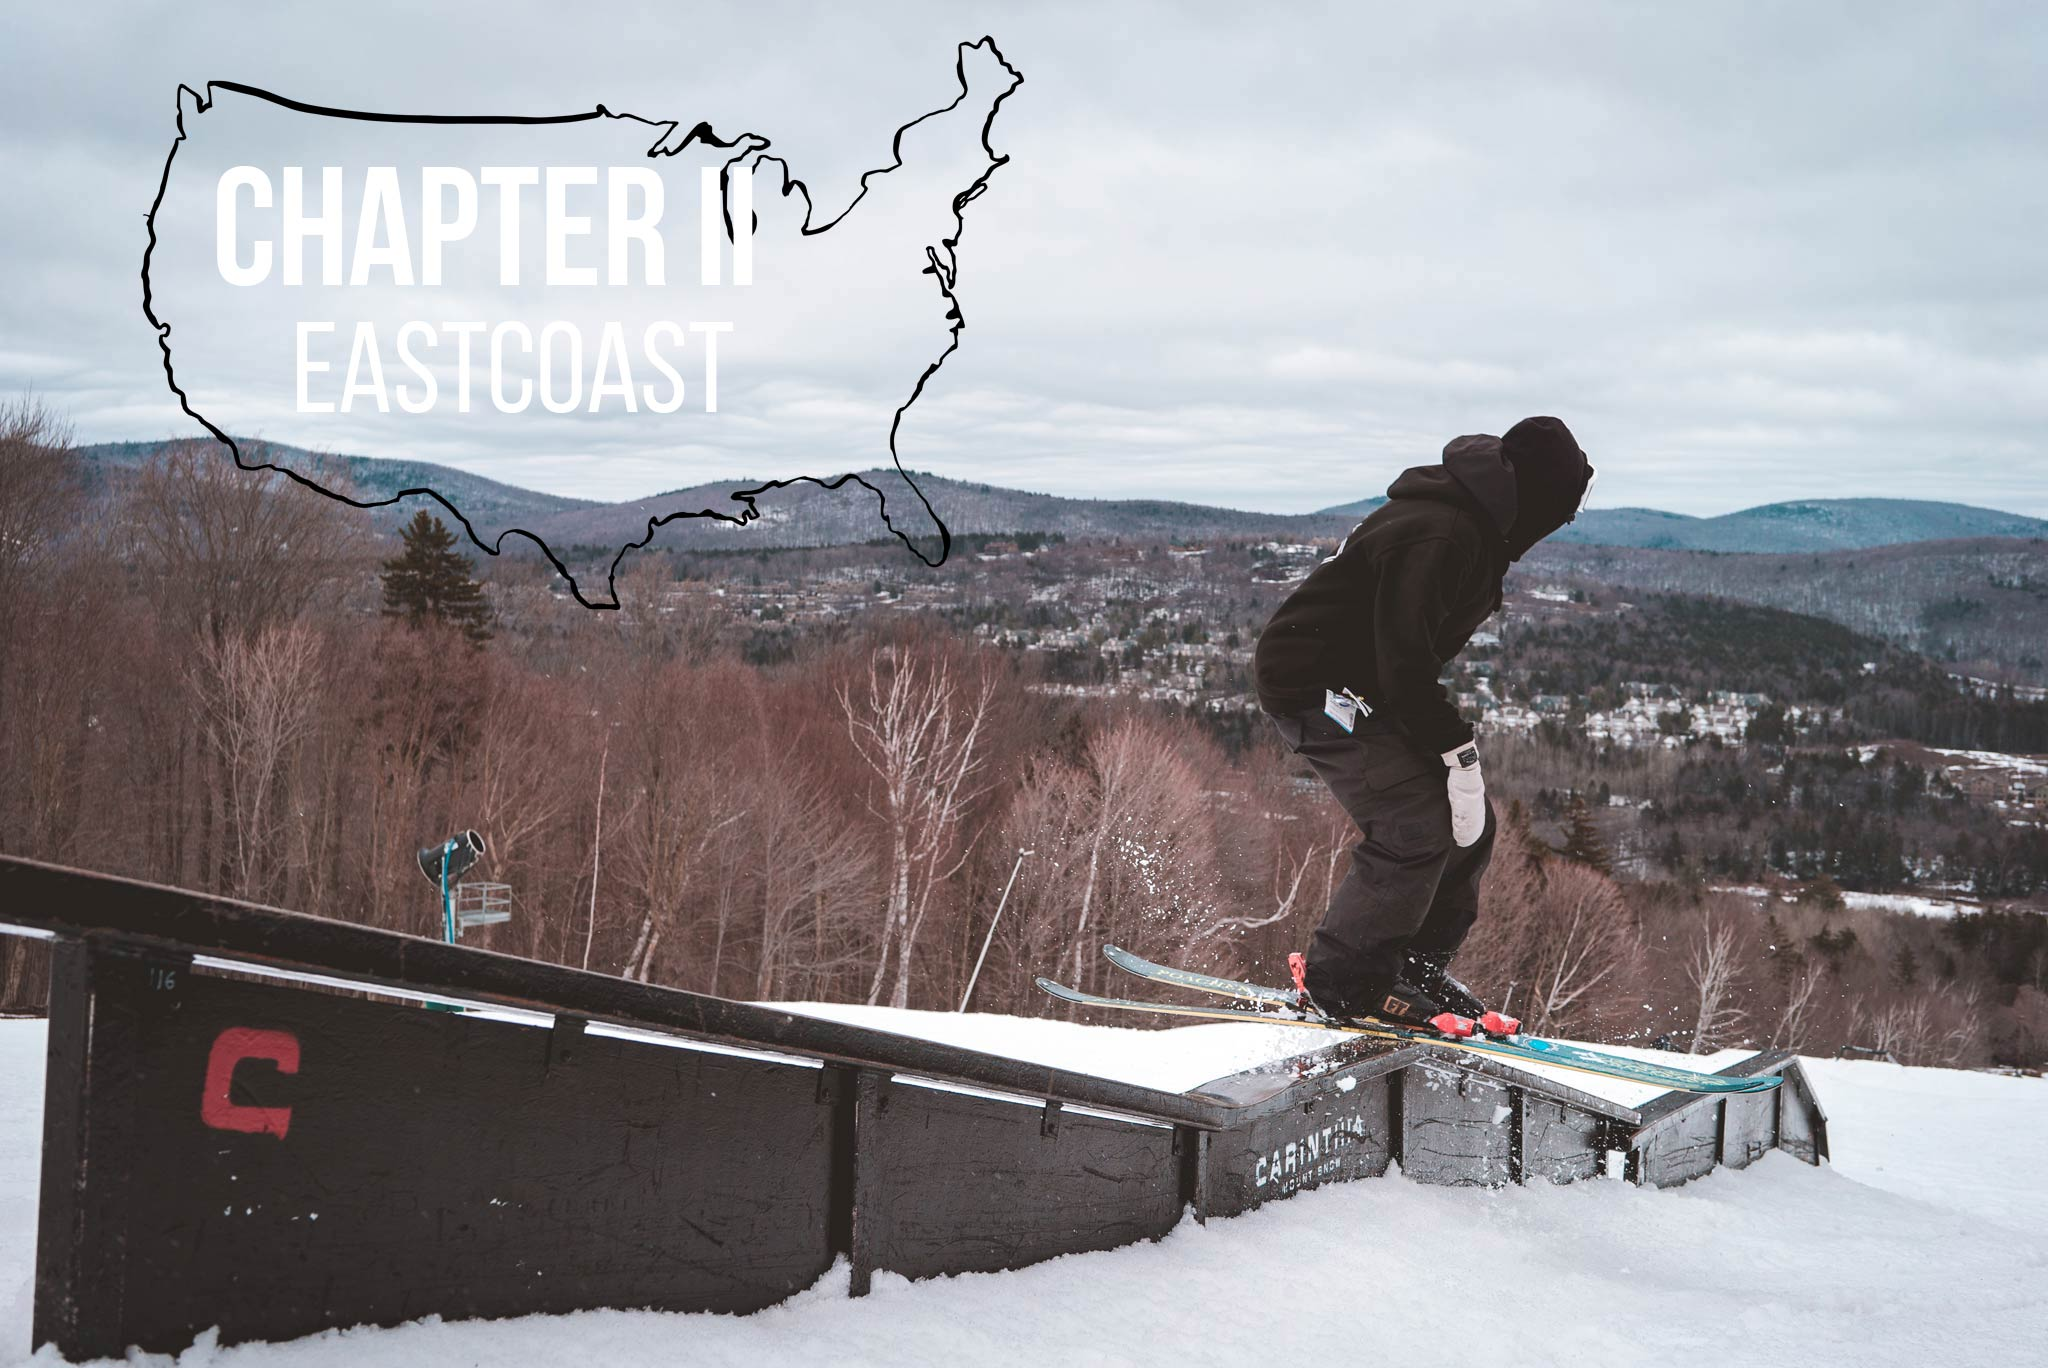 From Coast to Coast - On the Road to Mt. Hood: Chapter II - Eastcoast